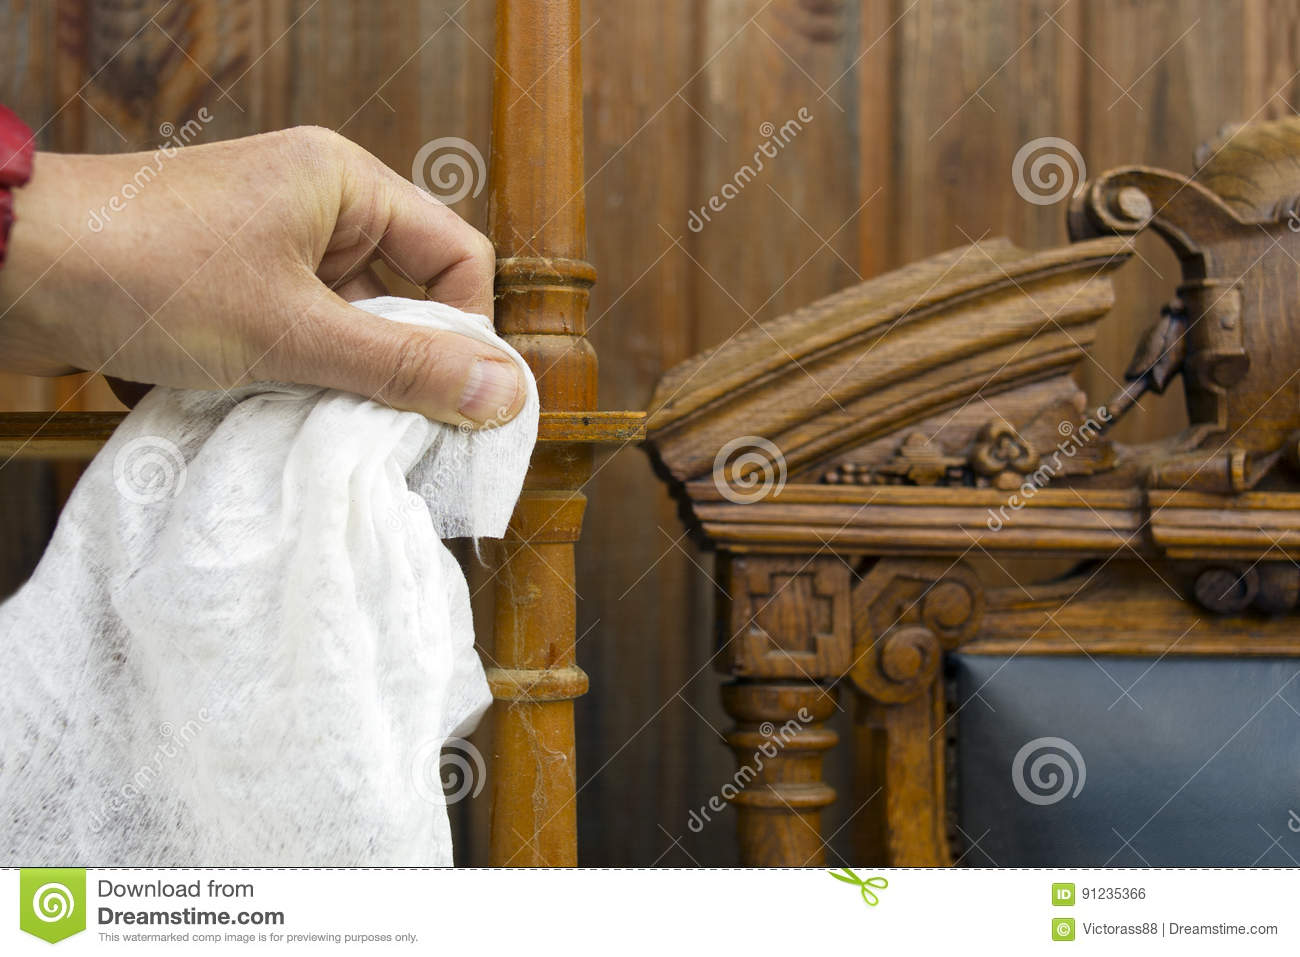 Cleaning Antique Furniture - Cleaning Antique Furniture Stock Photo. Image Of Tidiness - 91235366